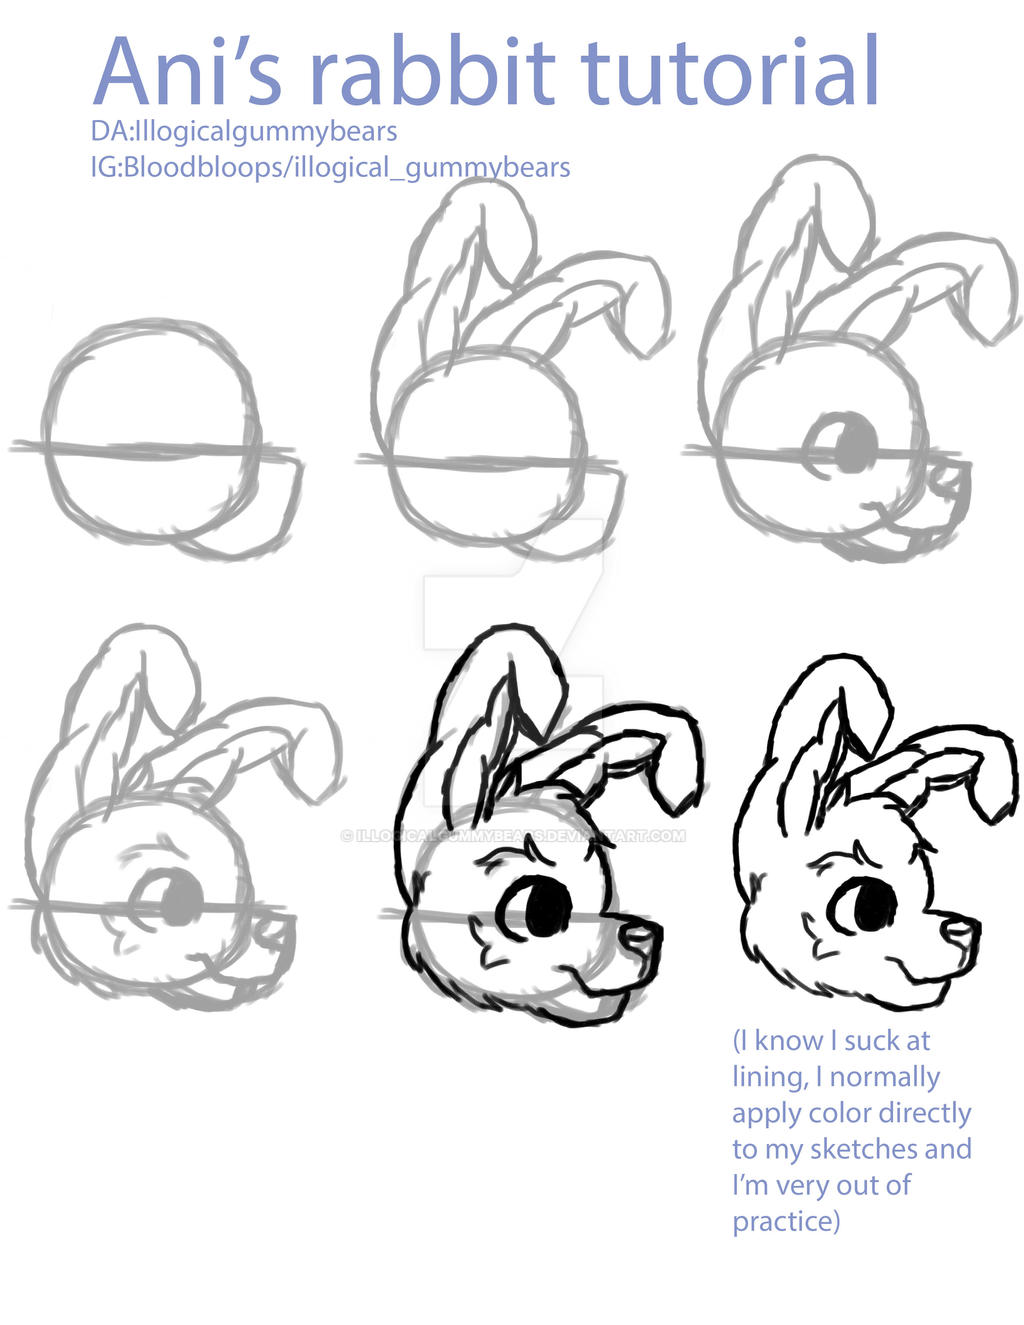 Rabbit Tutorial by illogicalgummybears